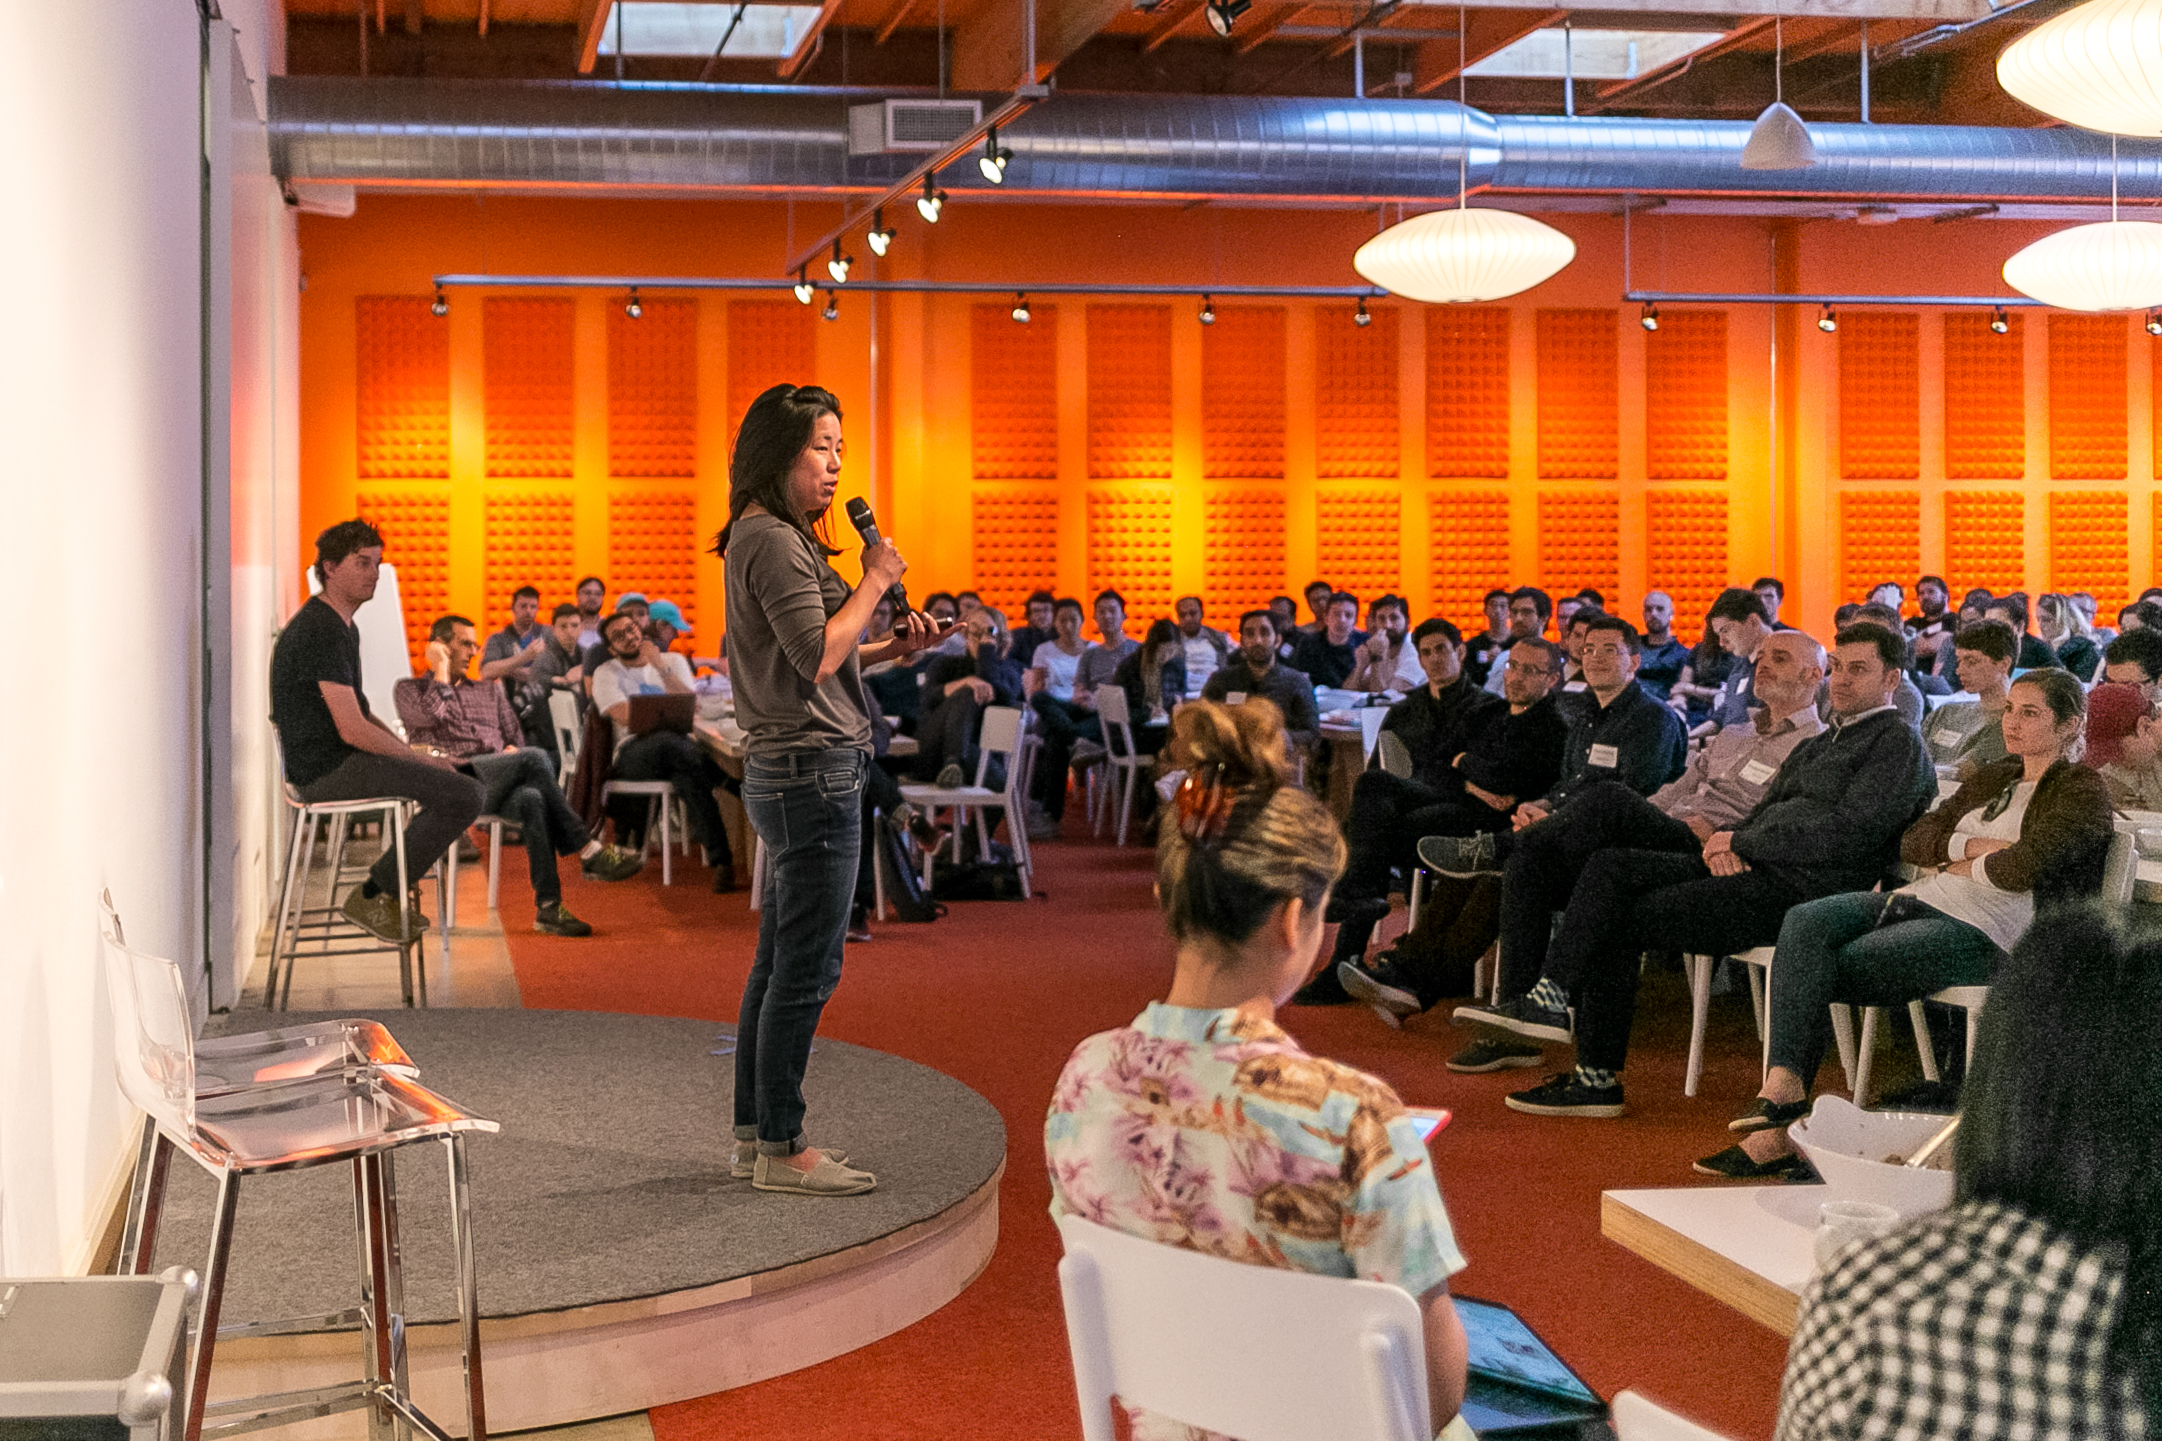 Startup School's Adora Cheung speaks to an audience